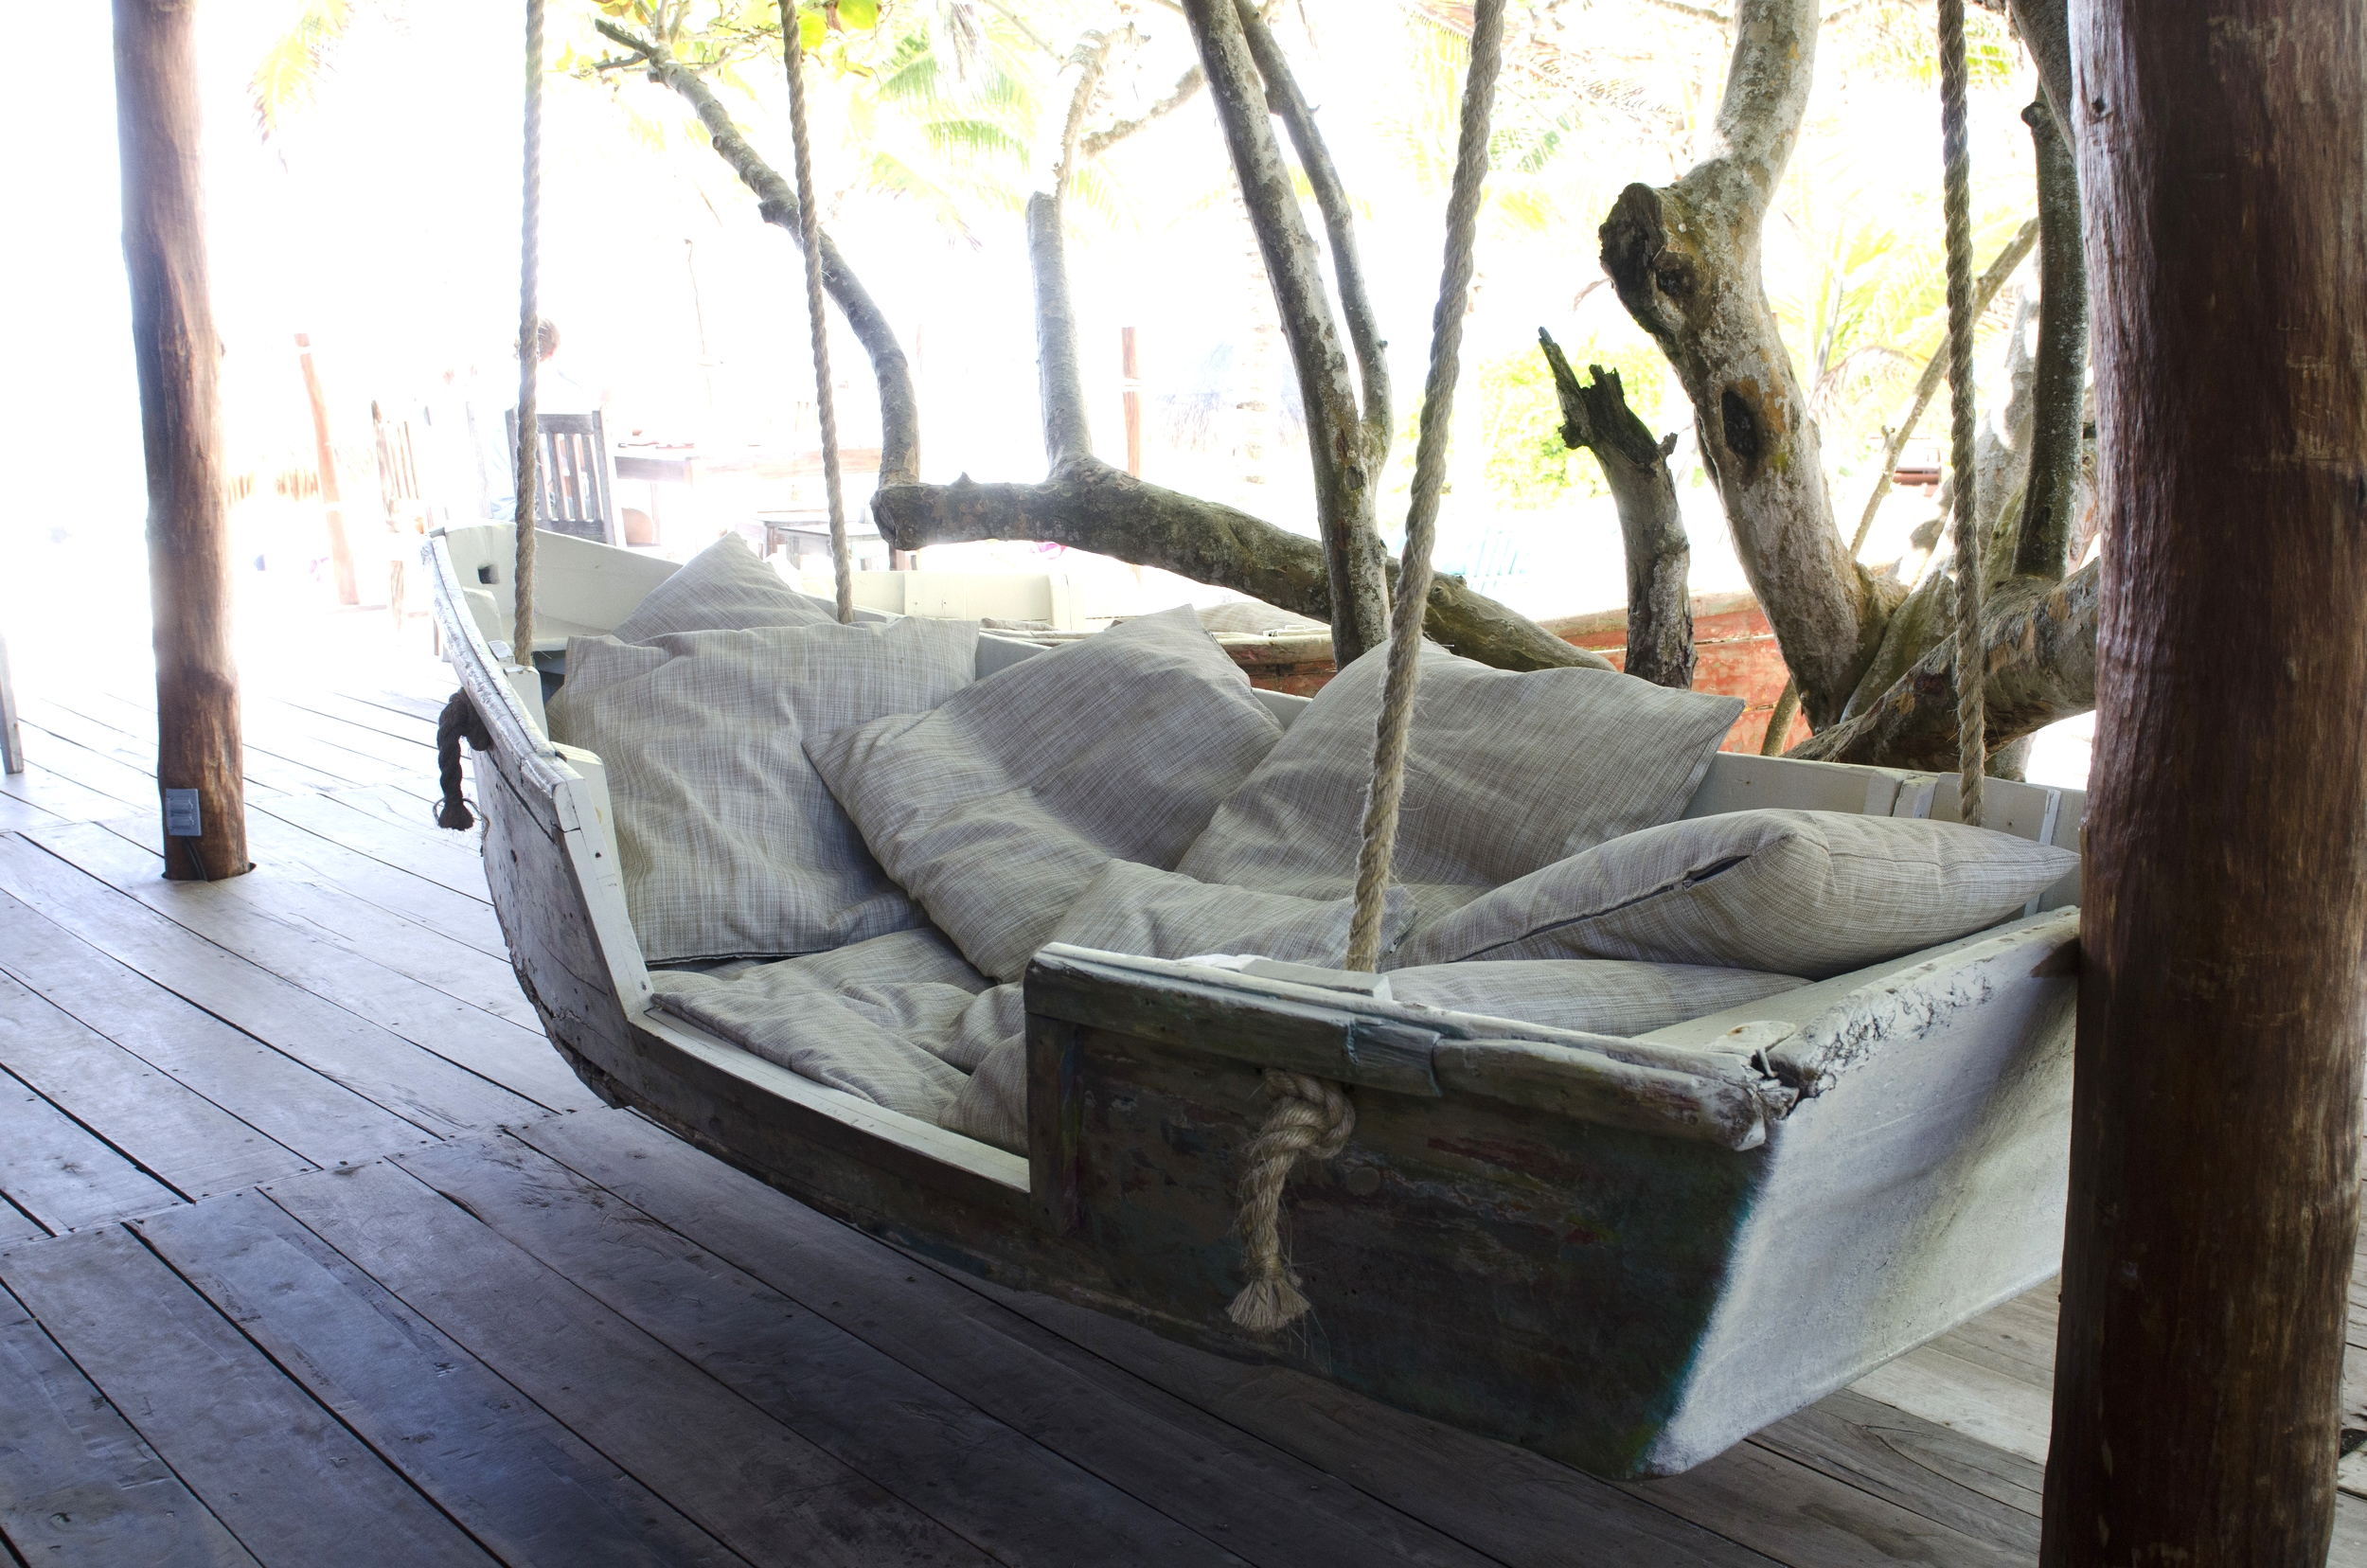 Example of the wonderful creativity exhibited around Tulum: boat swing at one of the boutiques